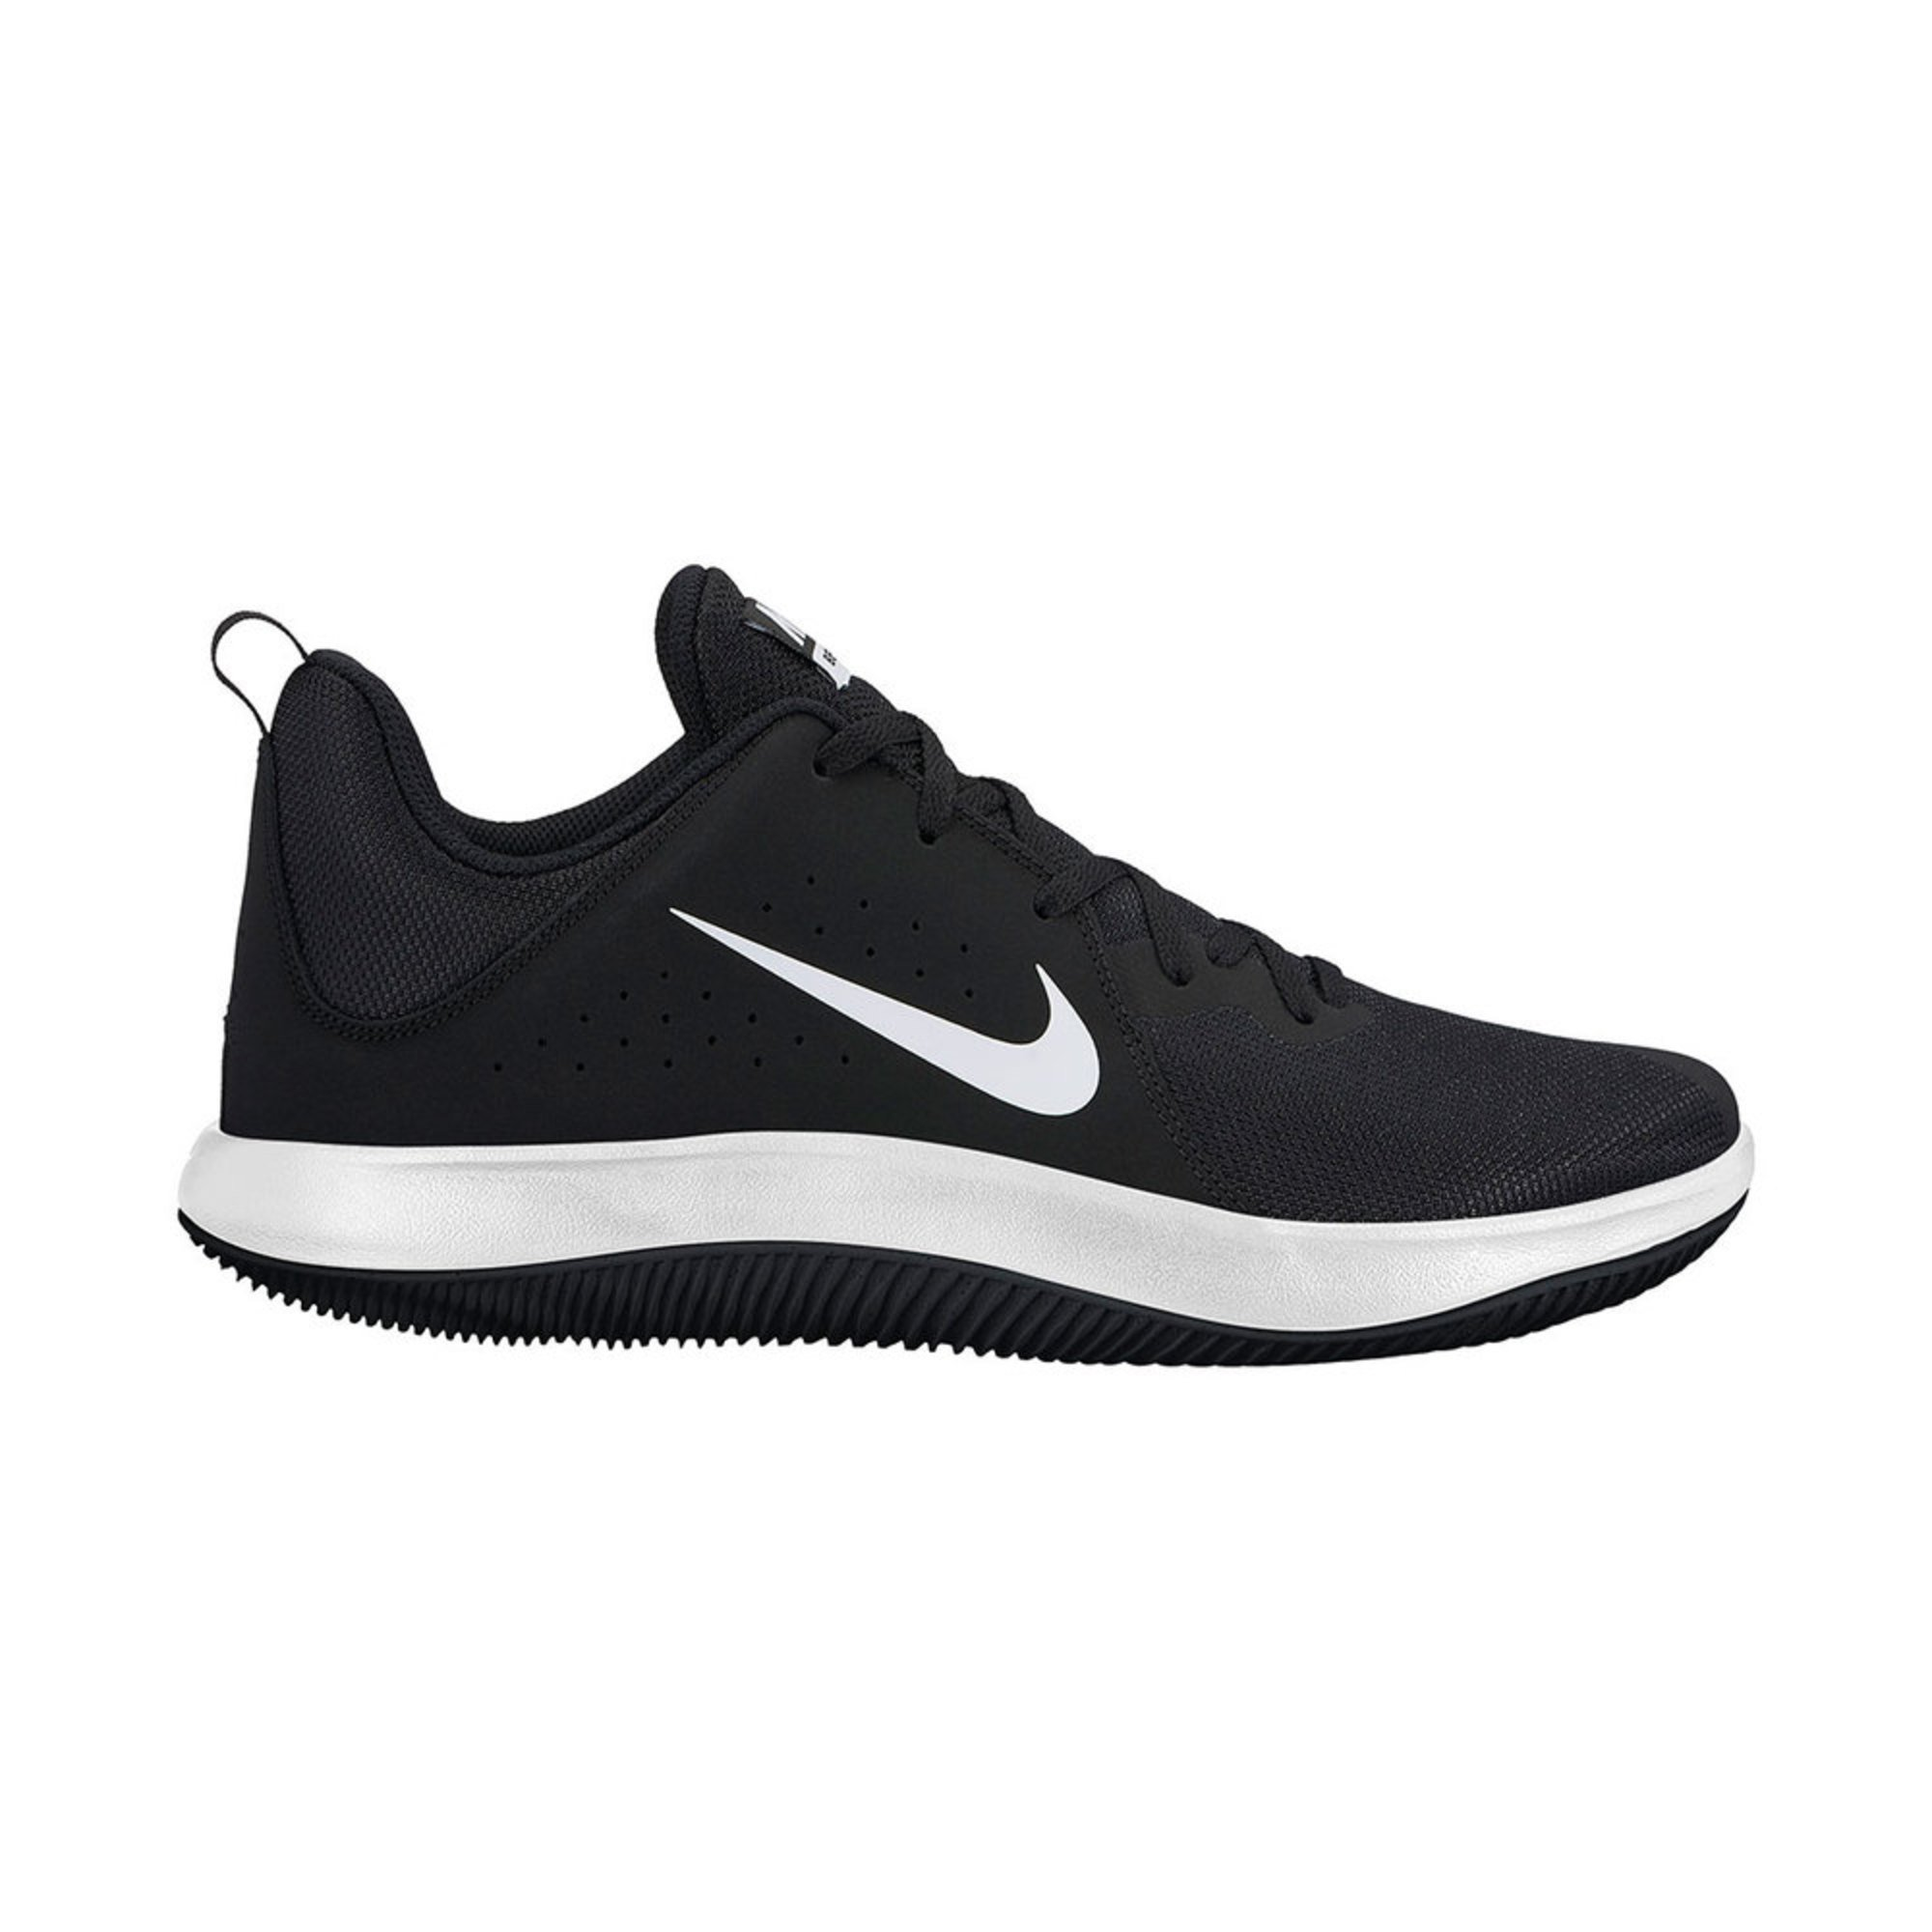 7fbc25680f641 Nike Men s Fly By Low Top Basketball Shoe